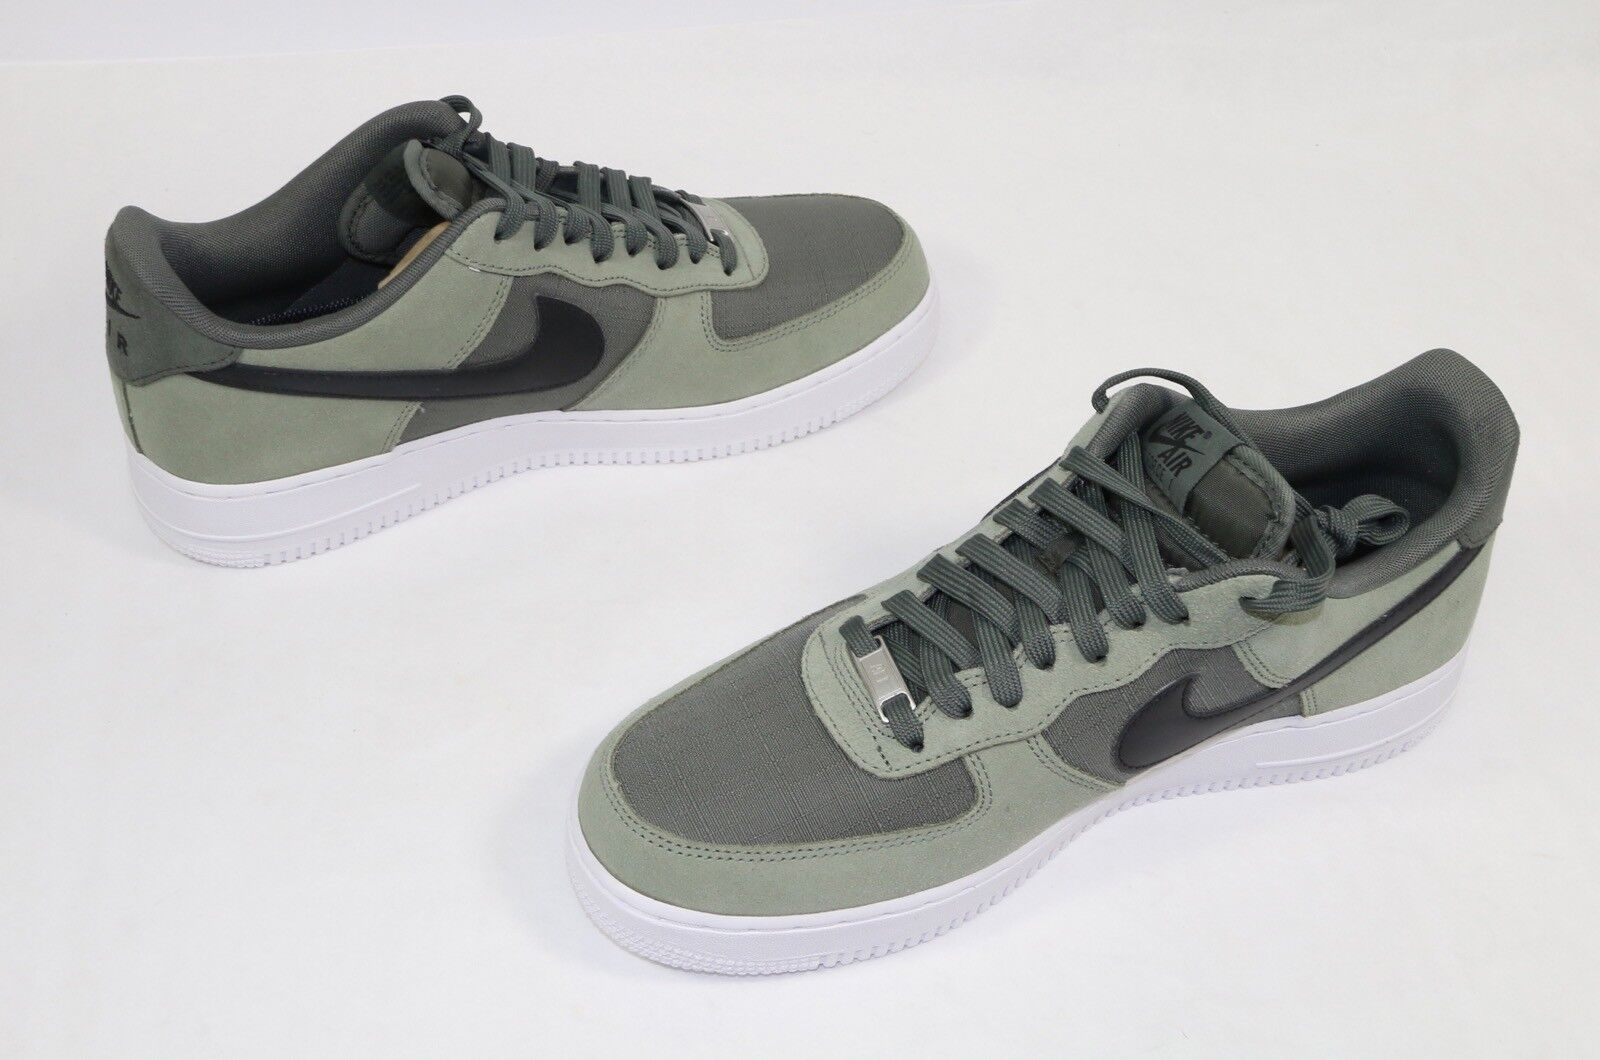 NEW Mens Nike Air Force 1 One Low QS Sneaker New Grey River Rock 488298-081 10.5